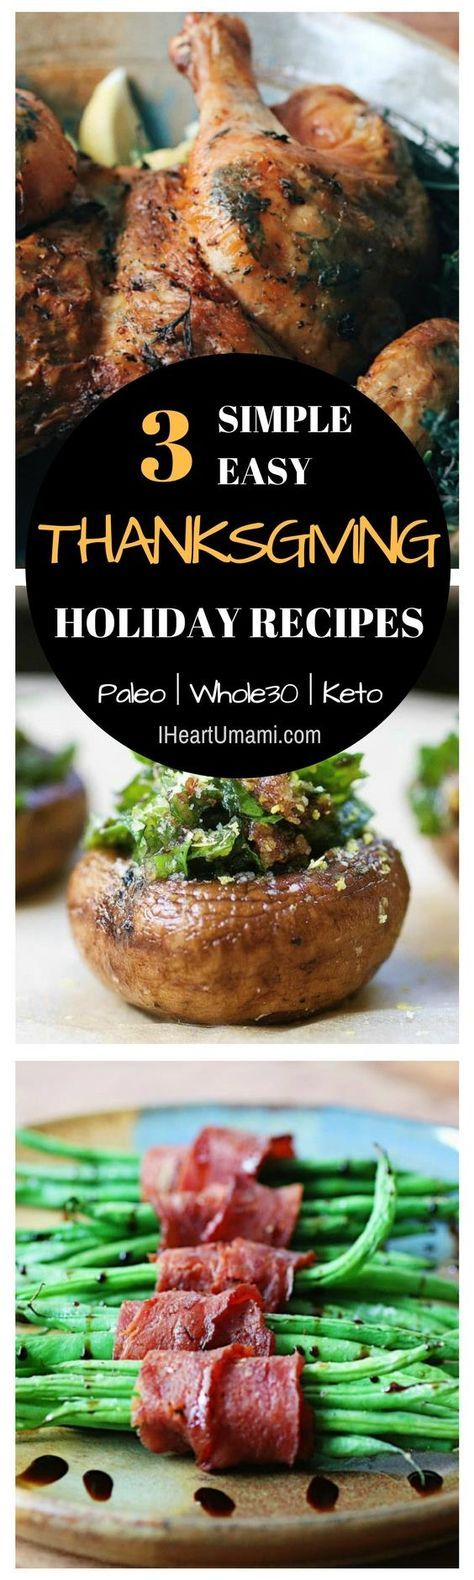 3 Simple and Easy Thanksgiving Recipes for a stress-free holiday party - from herb roasted chicken to bacon wrapped crispy green beans. Relax, have fun and enjoy healthy delicious holiday recipes ! #thanksgiving #holidayrecipes #iheartumami #paleothanksgiving